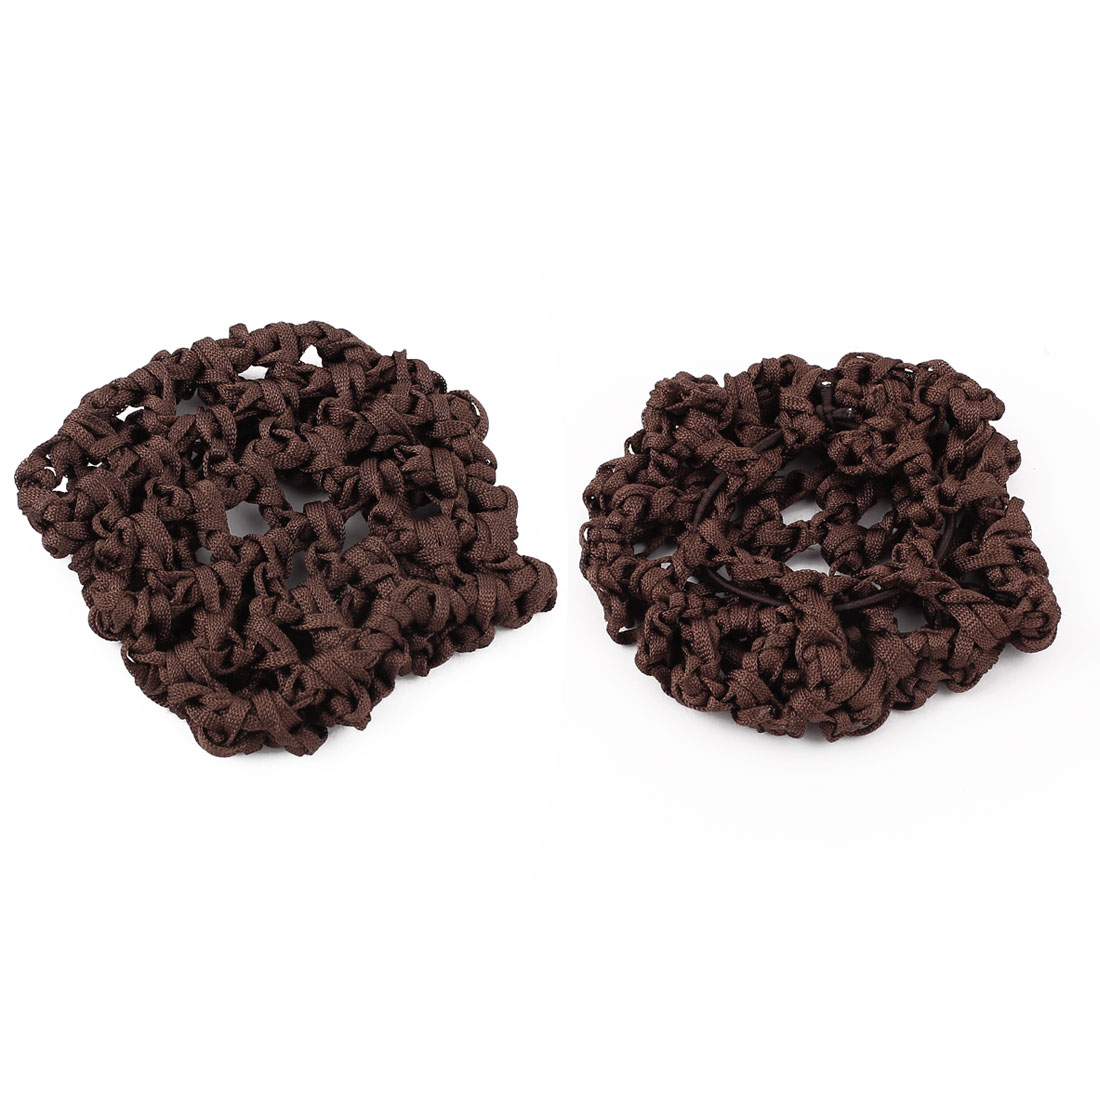 Women Elastic Band Mesh Net Bun Cover Snood Hairnets Dark Brown 2 Pcs